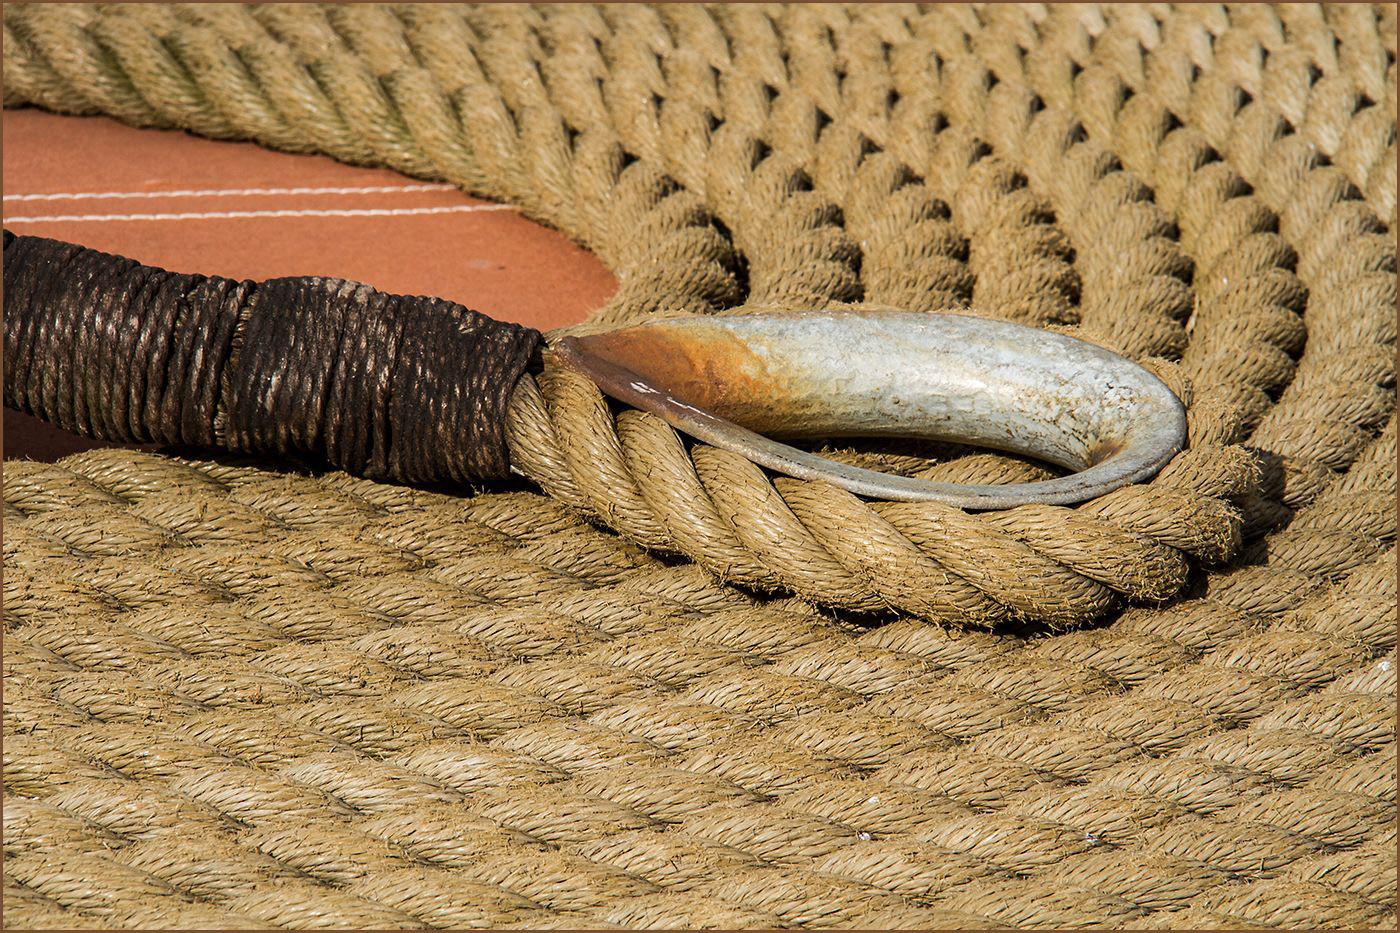 18 COILED ROPE by Cathie Agates